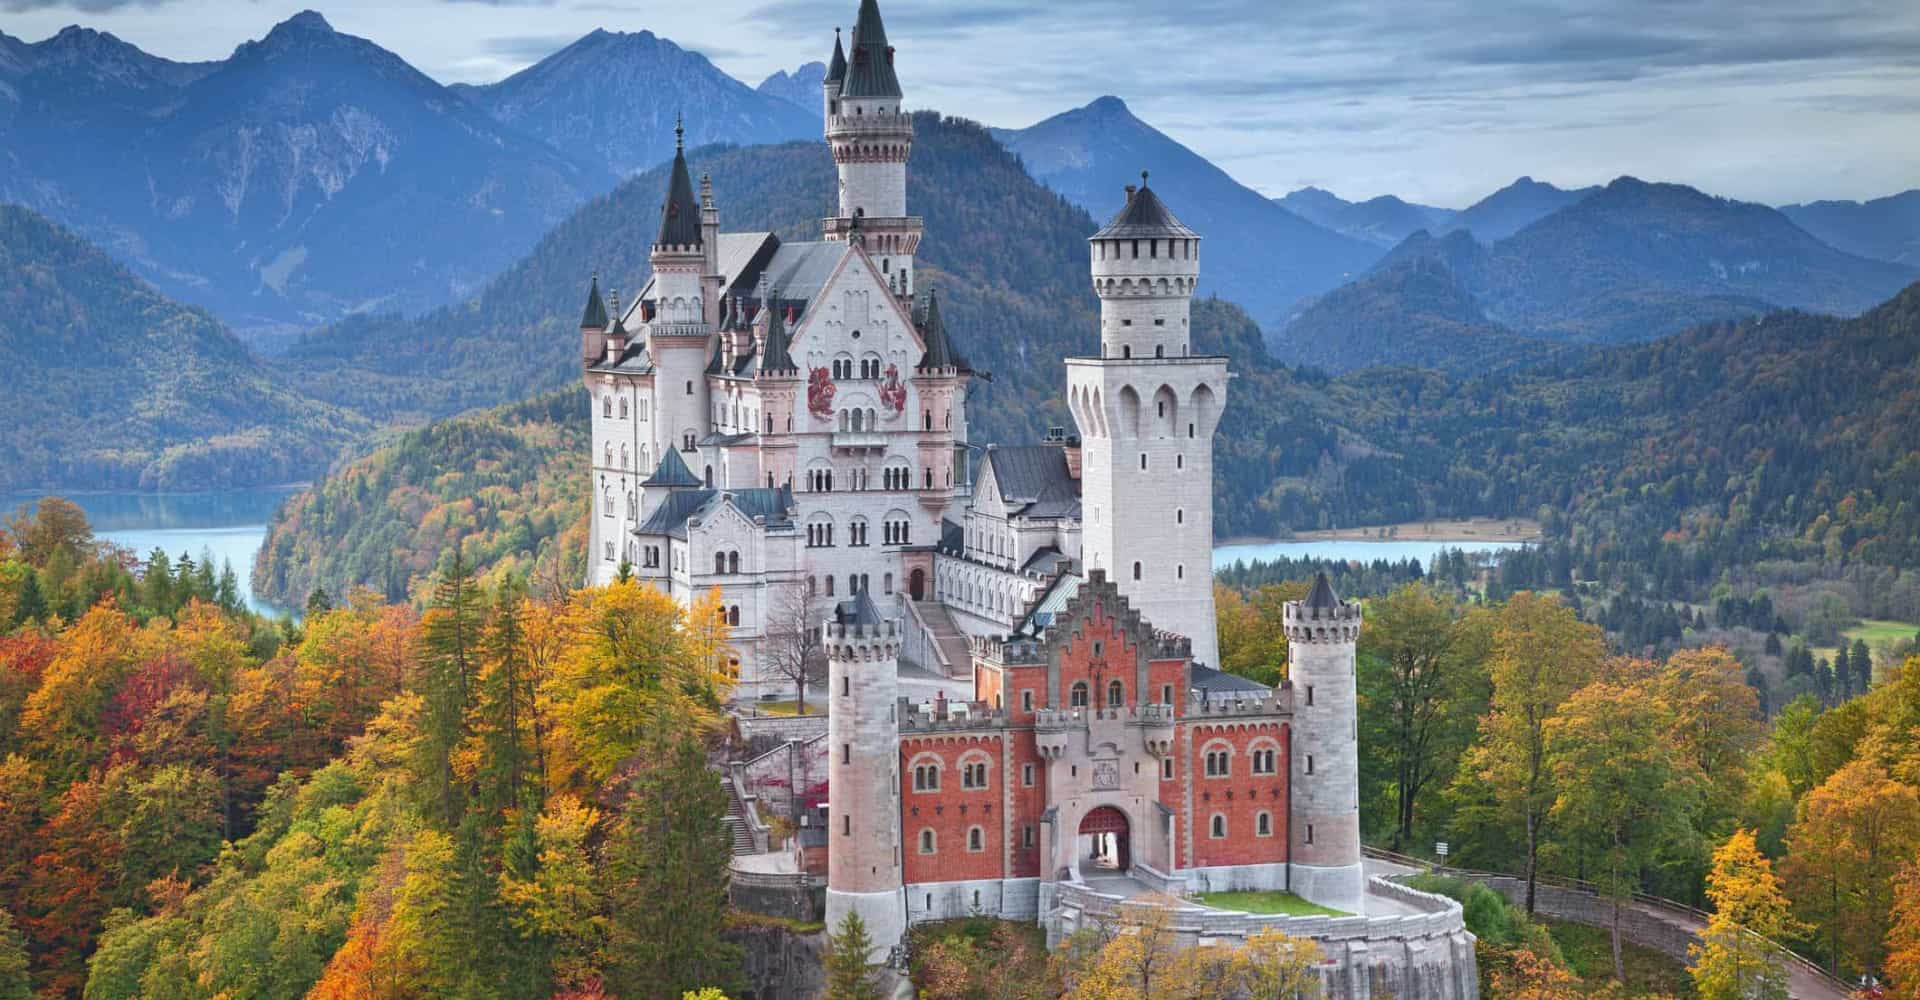 Breathtaking castles that look straight out of a fairy tale